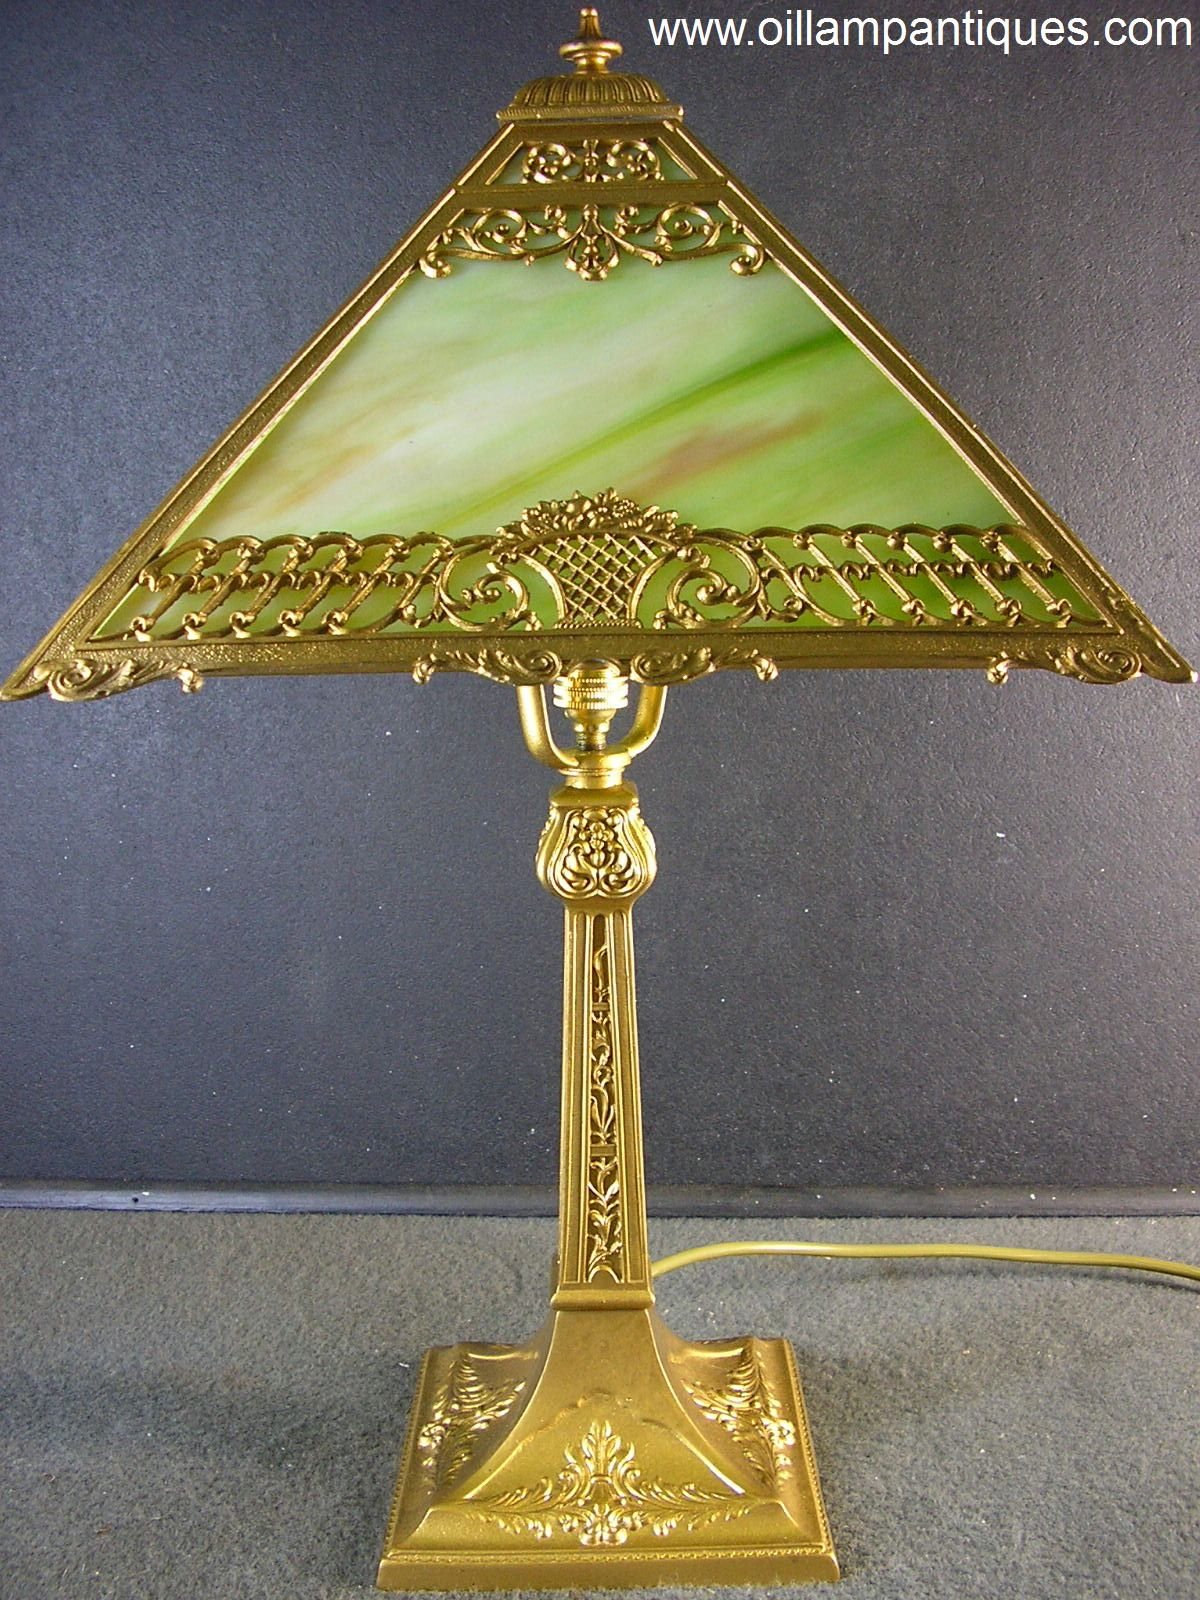 466608c24843 This antique electric slag glass lamp is one of the smaller styles. The  shade is